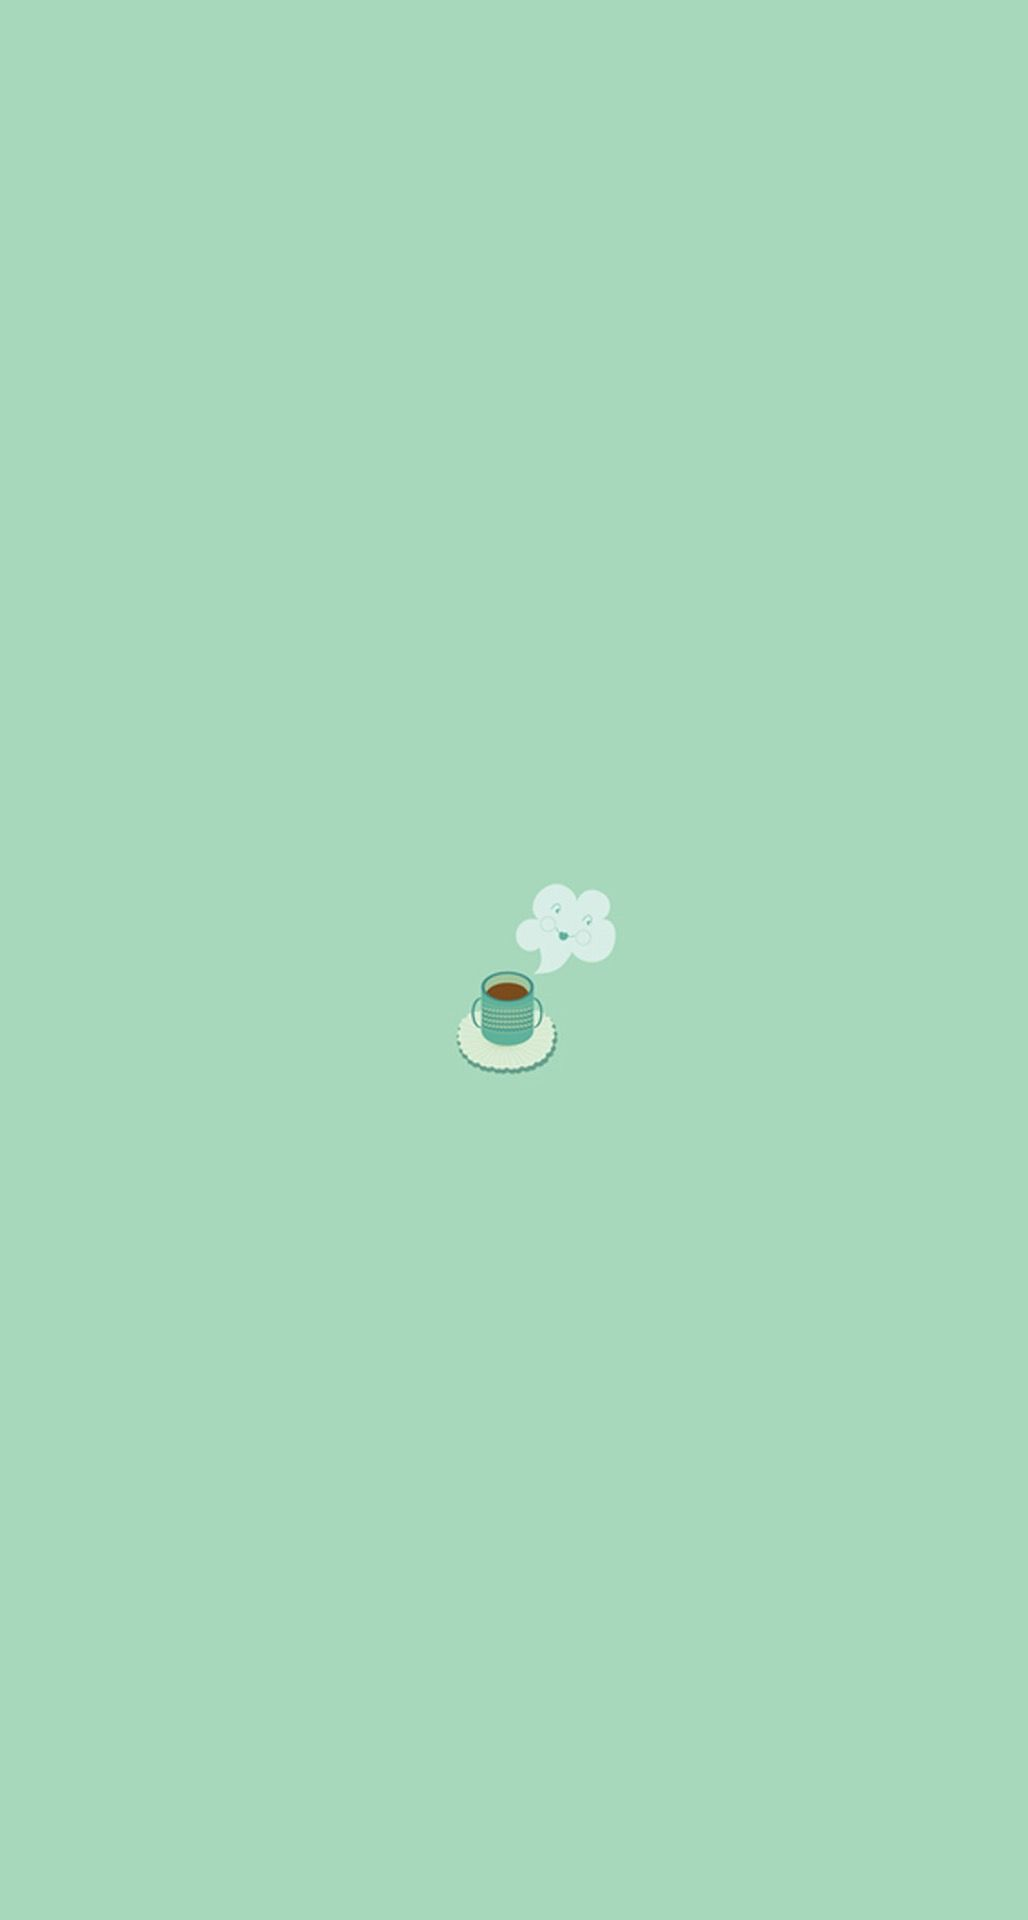 Simple Coffee Mug Flat Illustration Iphone 6 Plus Hd Wallpaper